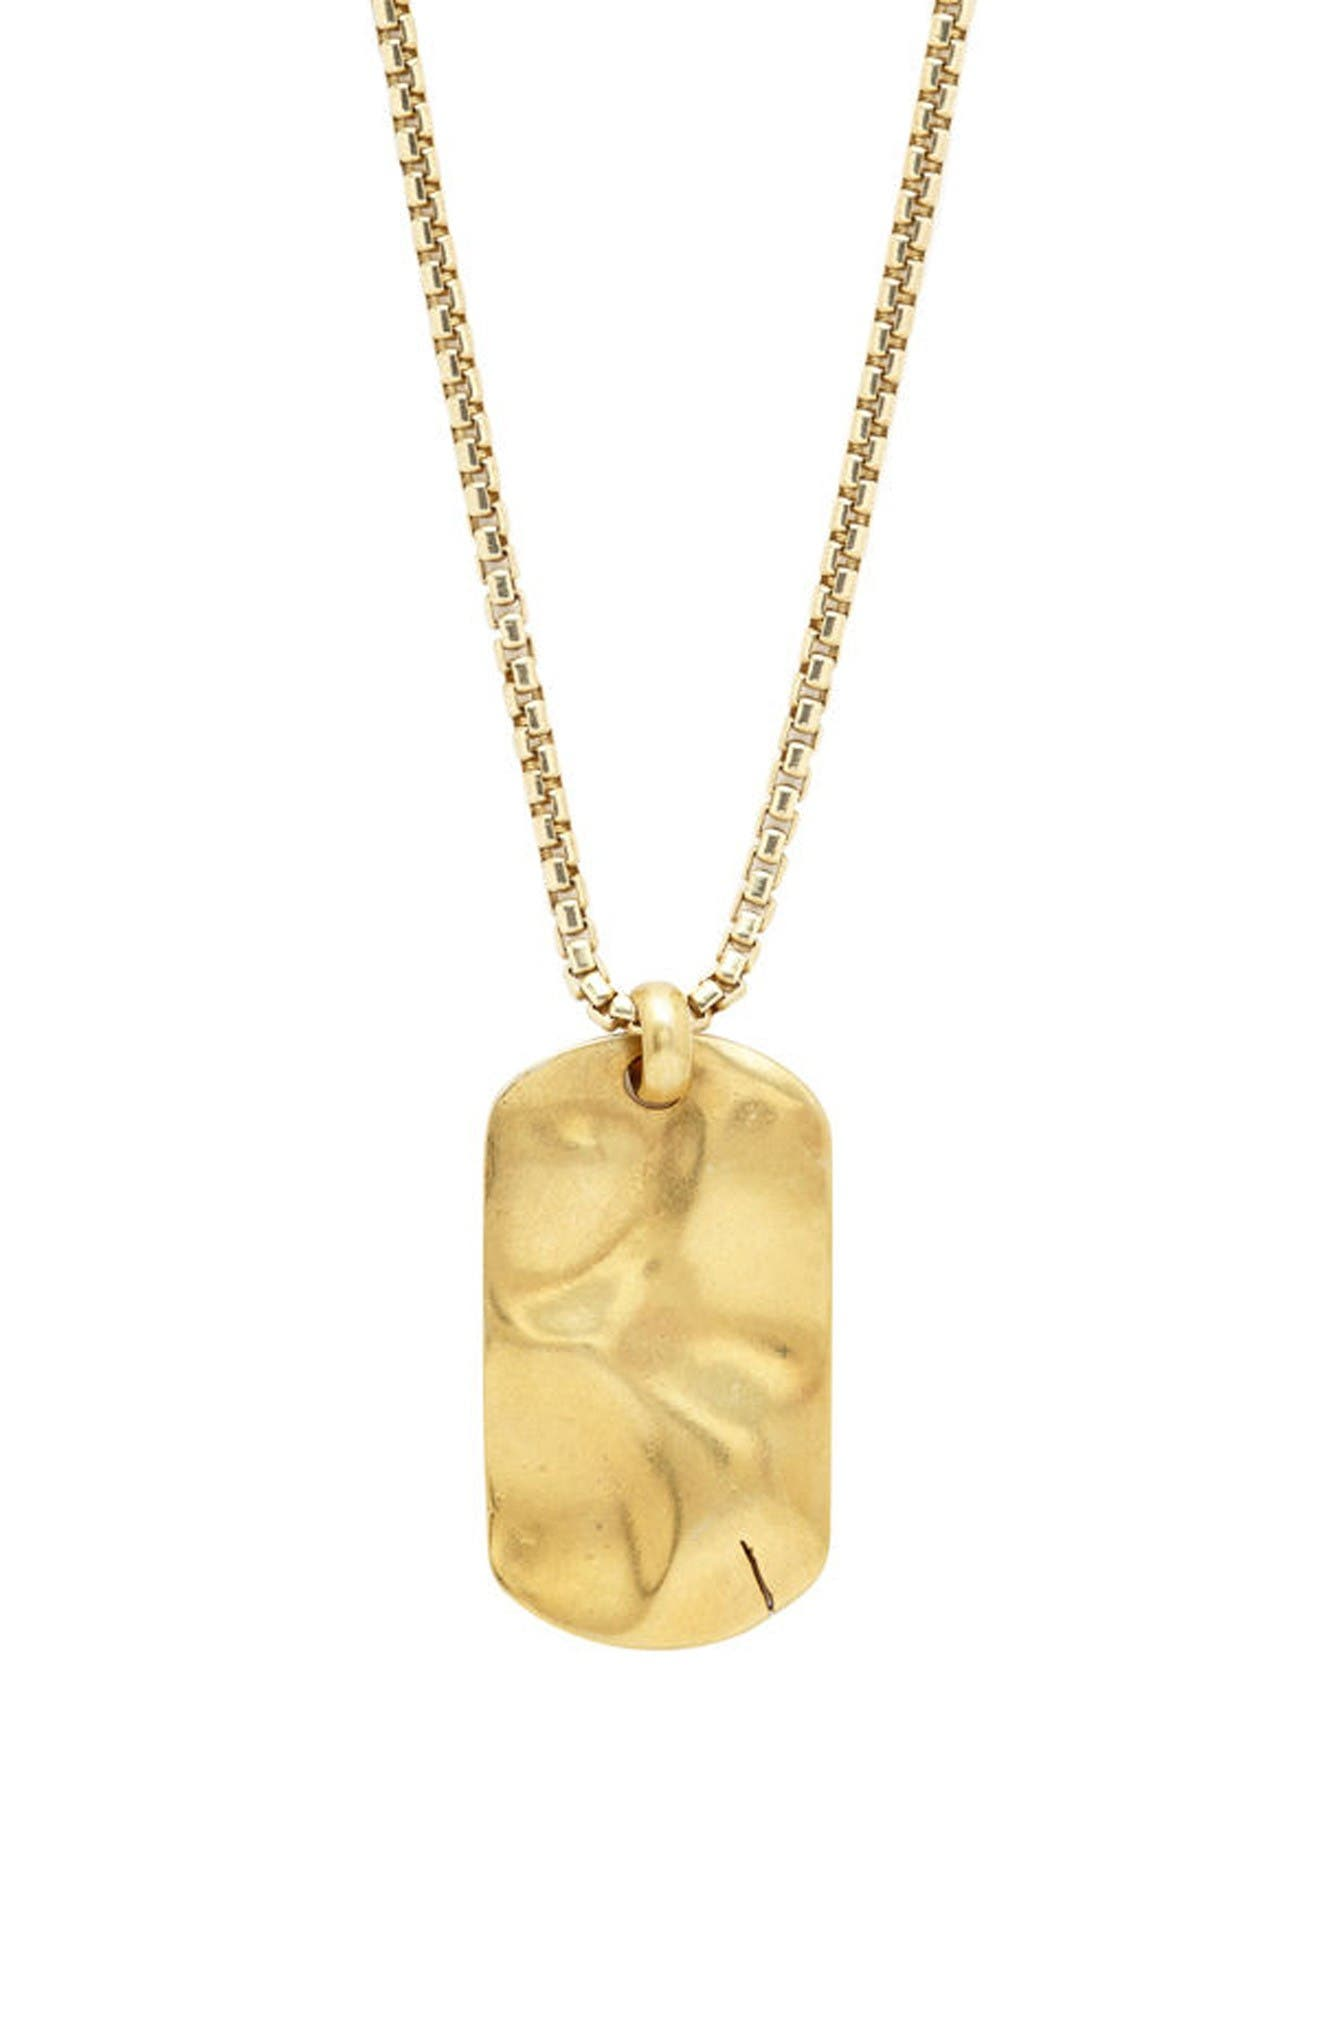 Degs & Sal Hammered Dog Tag Necklace